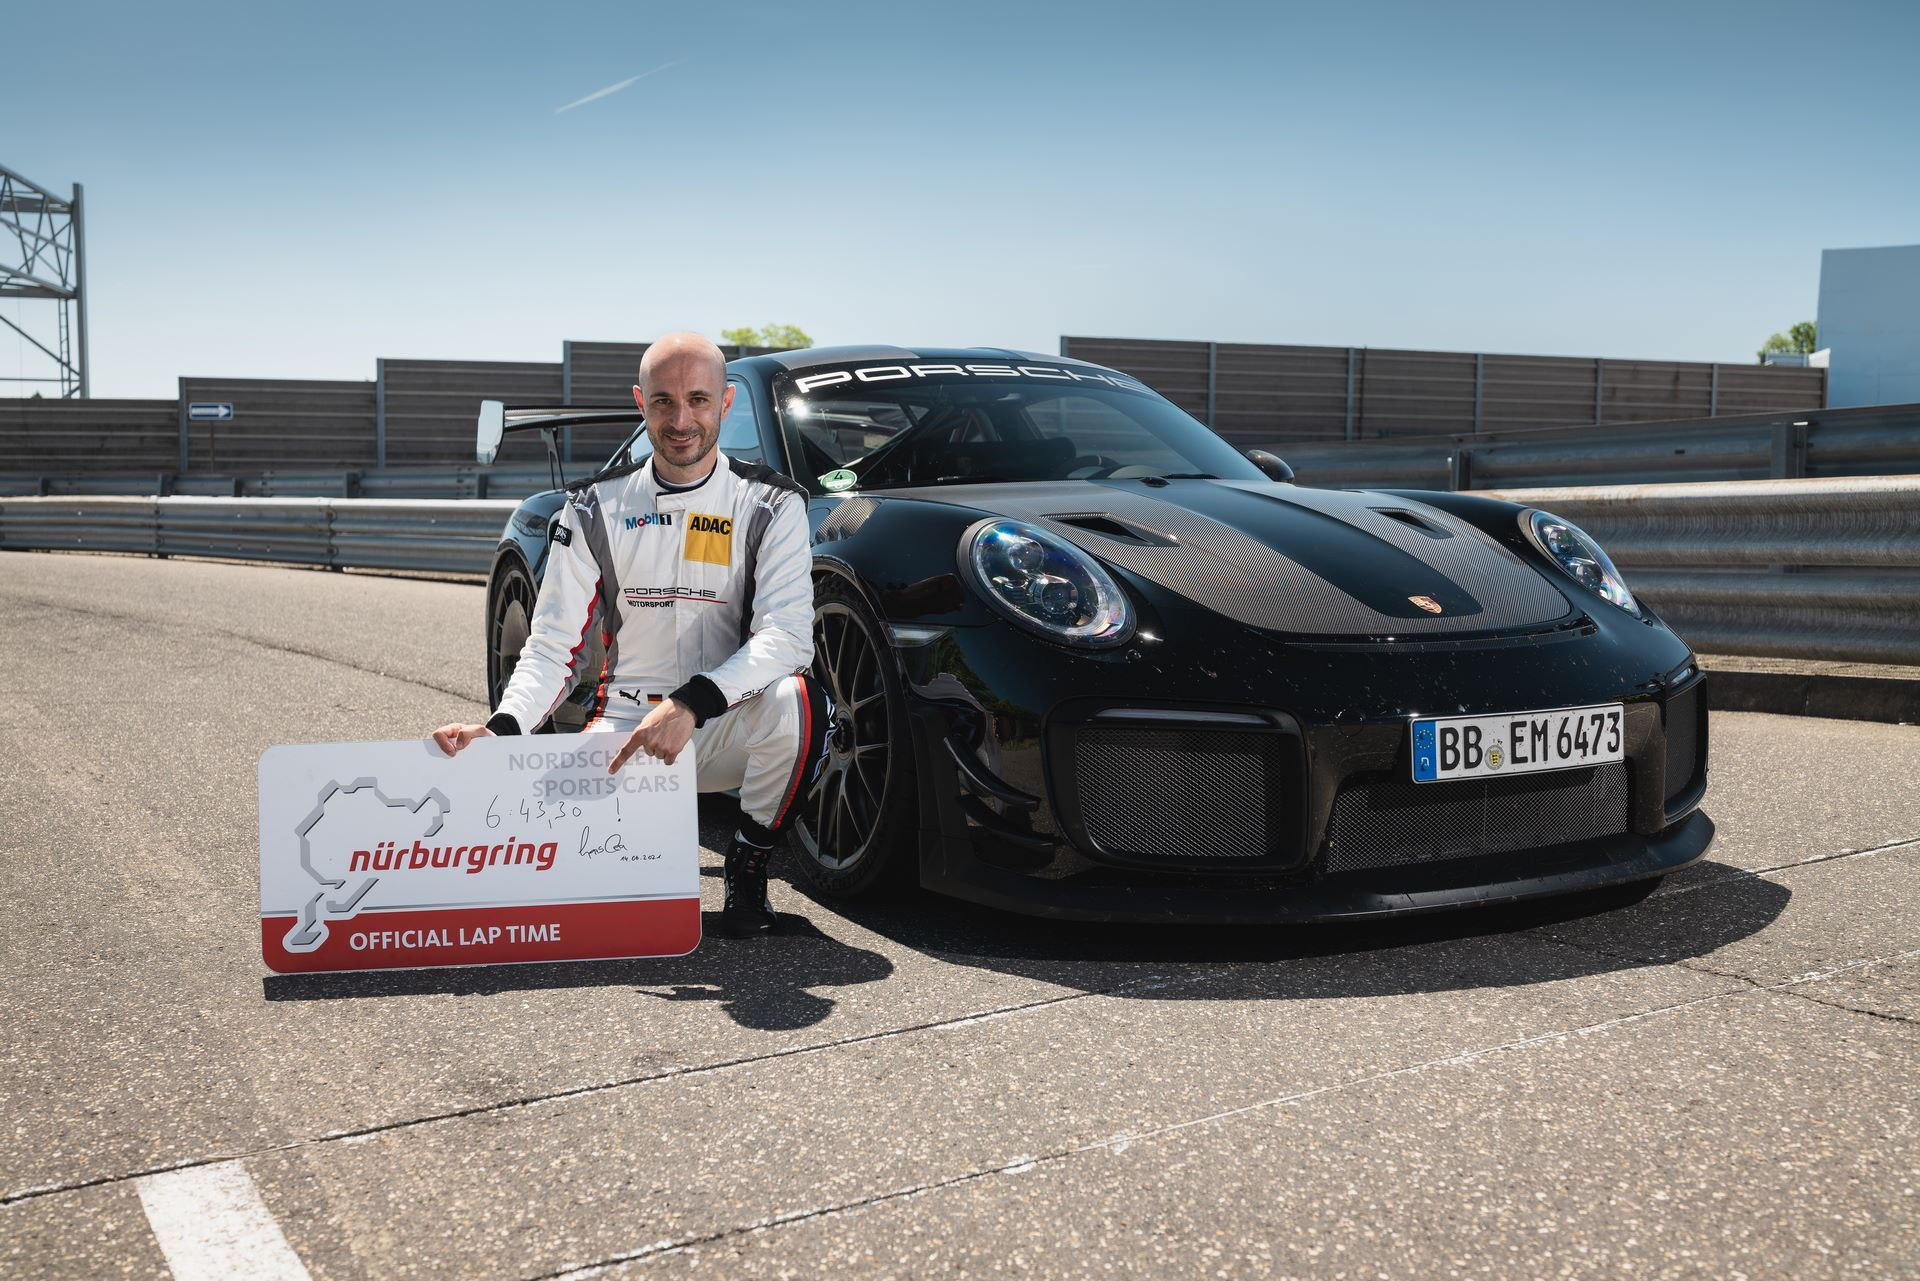 Porsche-911-GT2-RS-Manthey-Performance-Kit-Nurburgring-Record-11